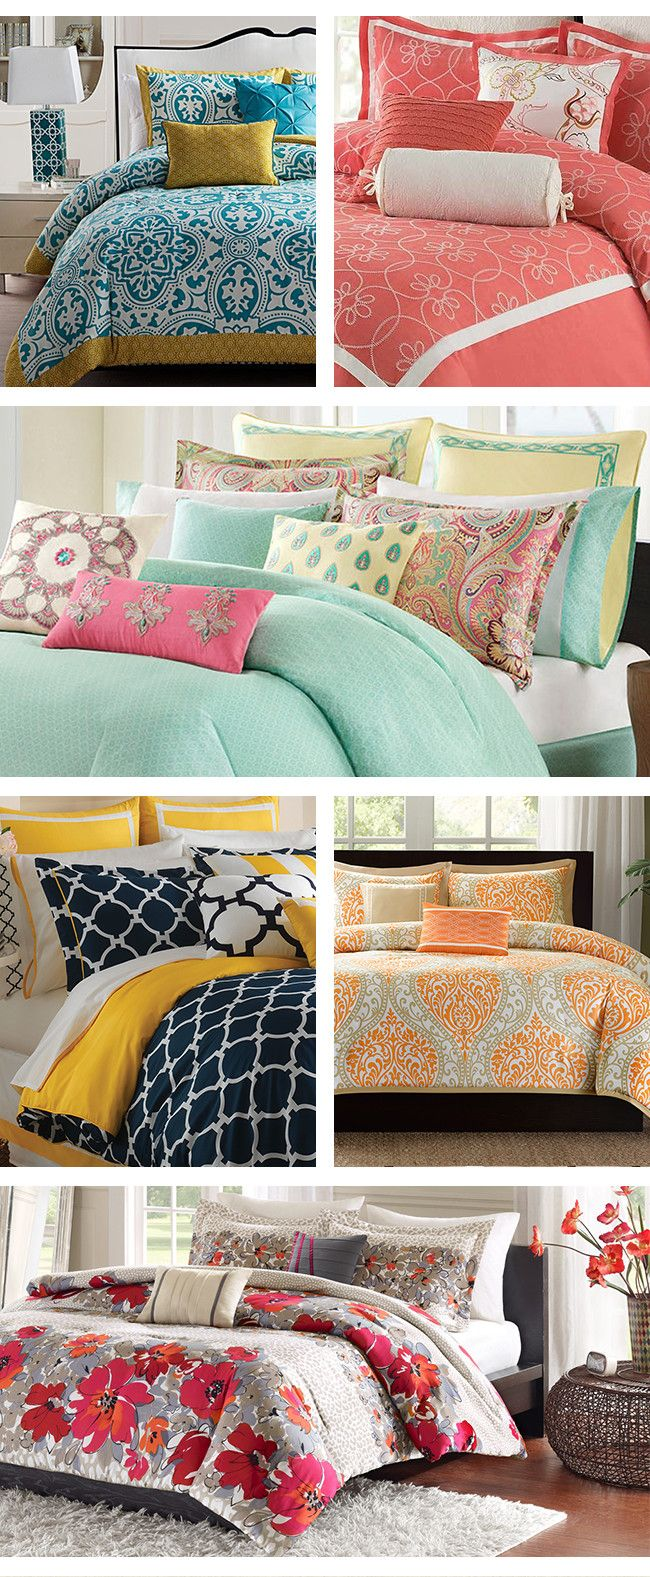 jordan release dates 2016 No matter your personal style  we have the perfect bedding sets to complement your bedroom d  cor  Visit Wayfair and sign up today to get access to exclusive deals everyday up to 70  off  Free shipping on all orders over  49